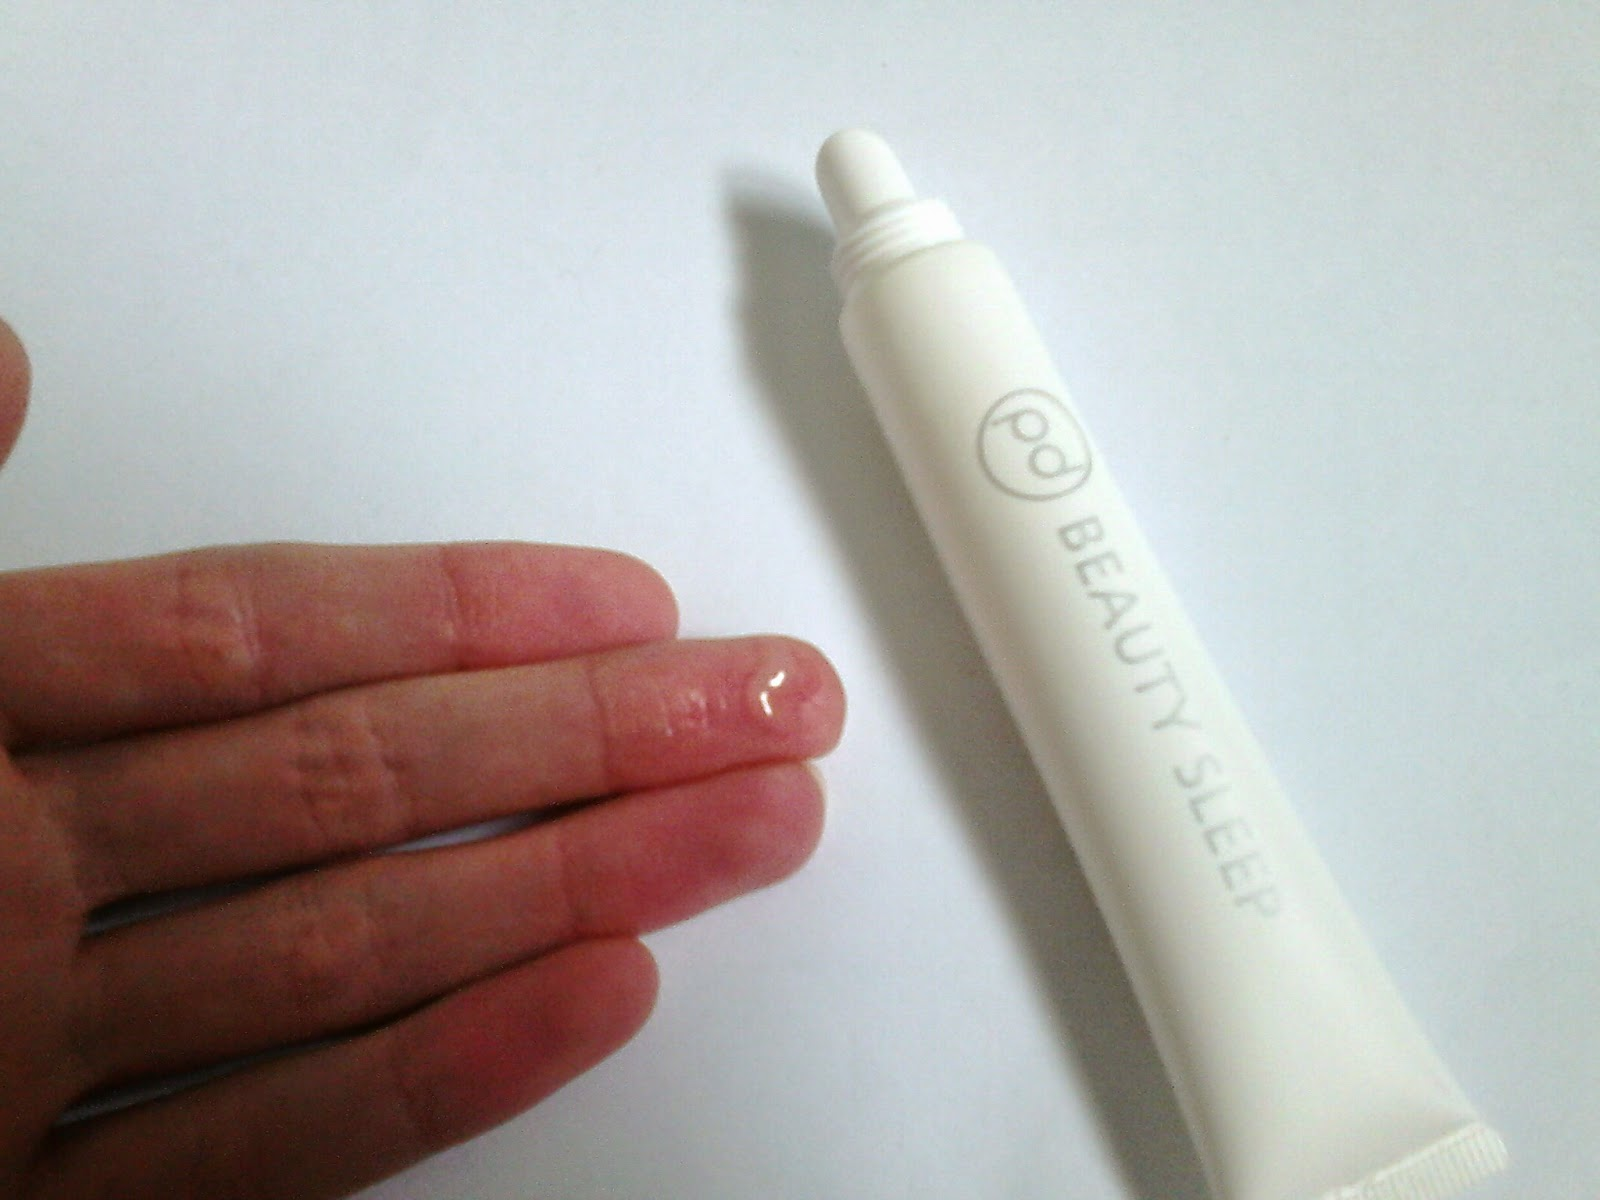 Pearl Drops Beauty Sleep Overnight Serum